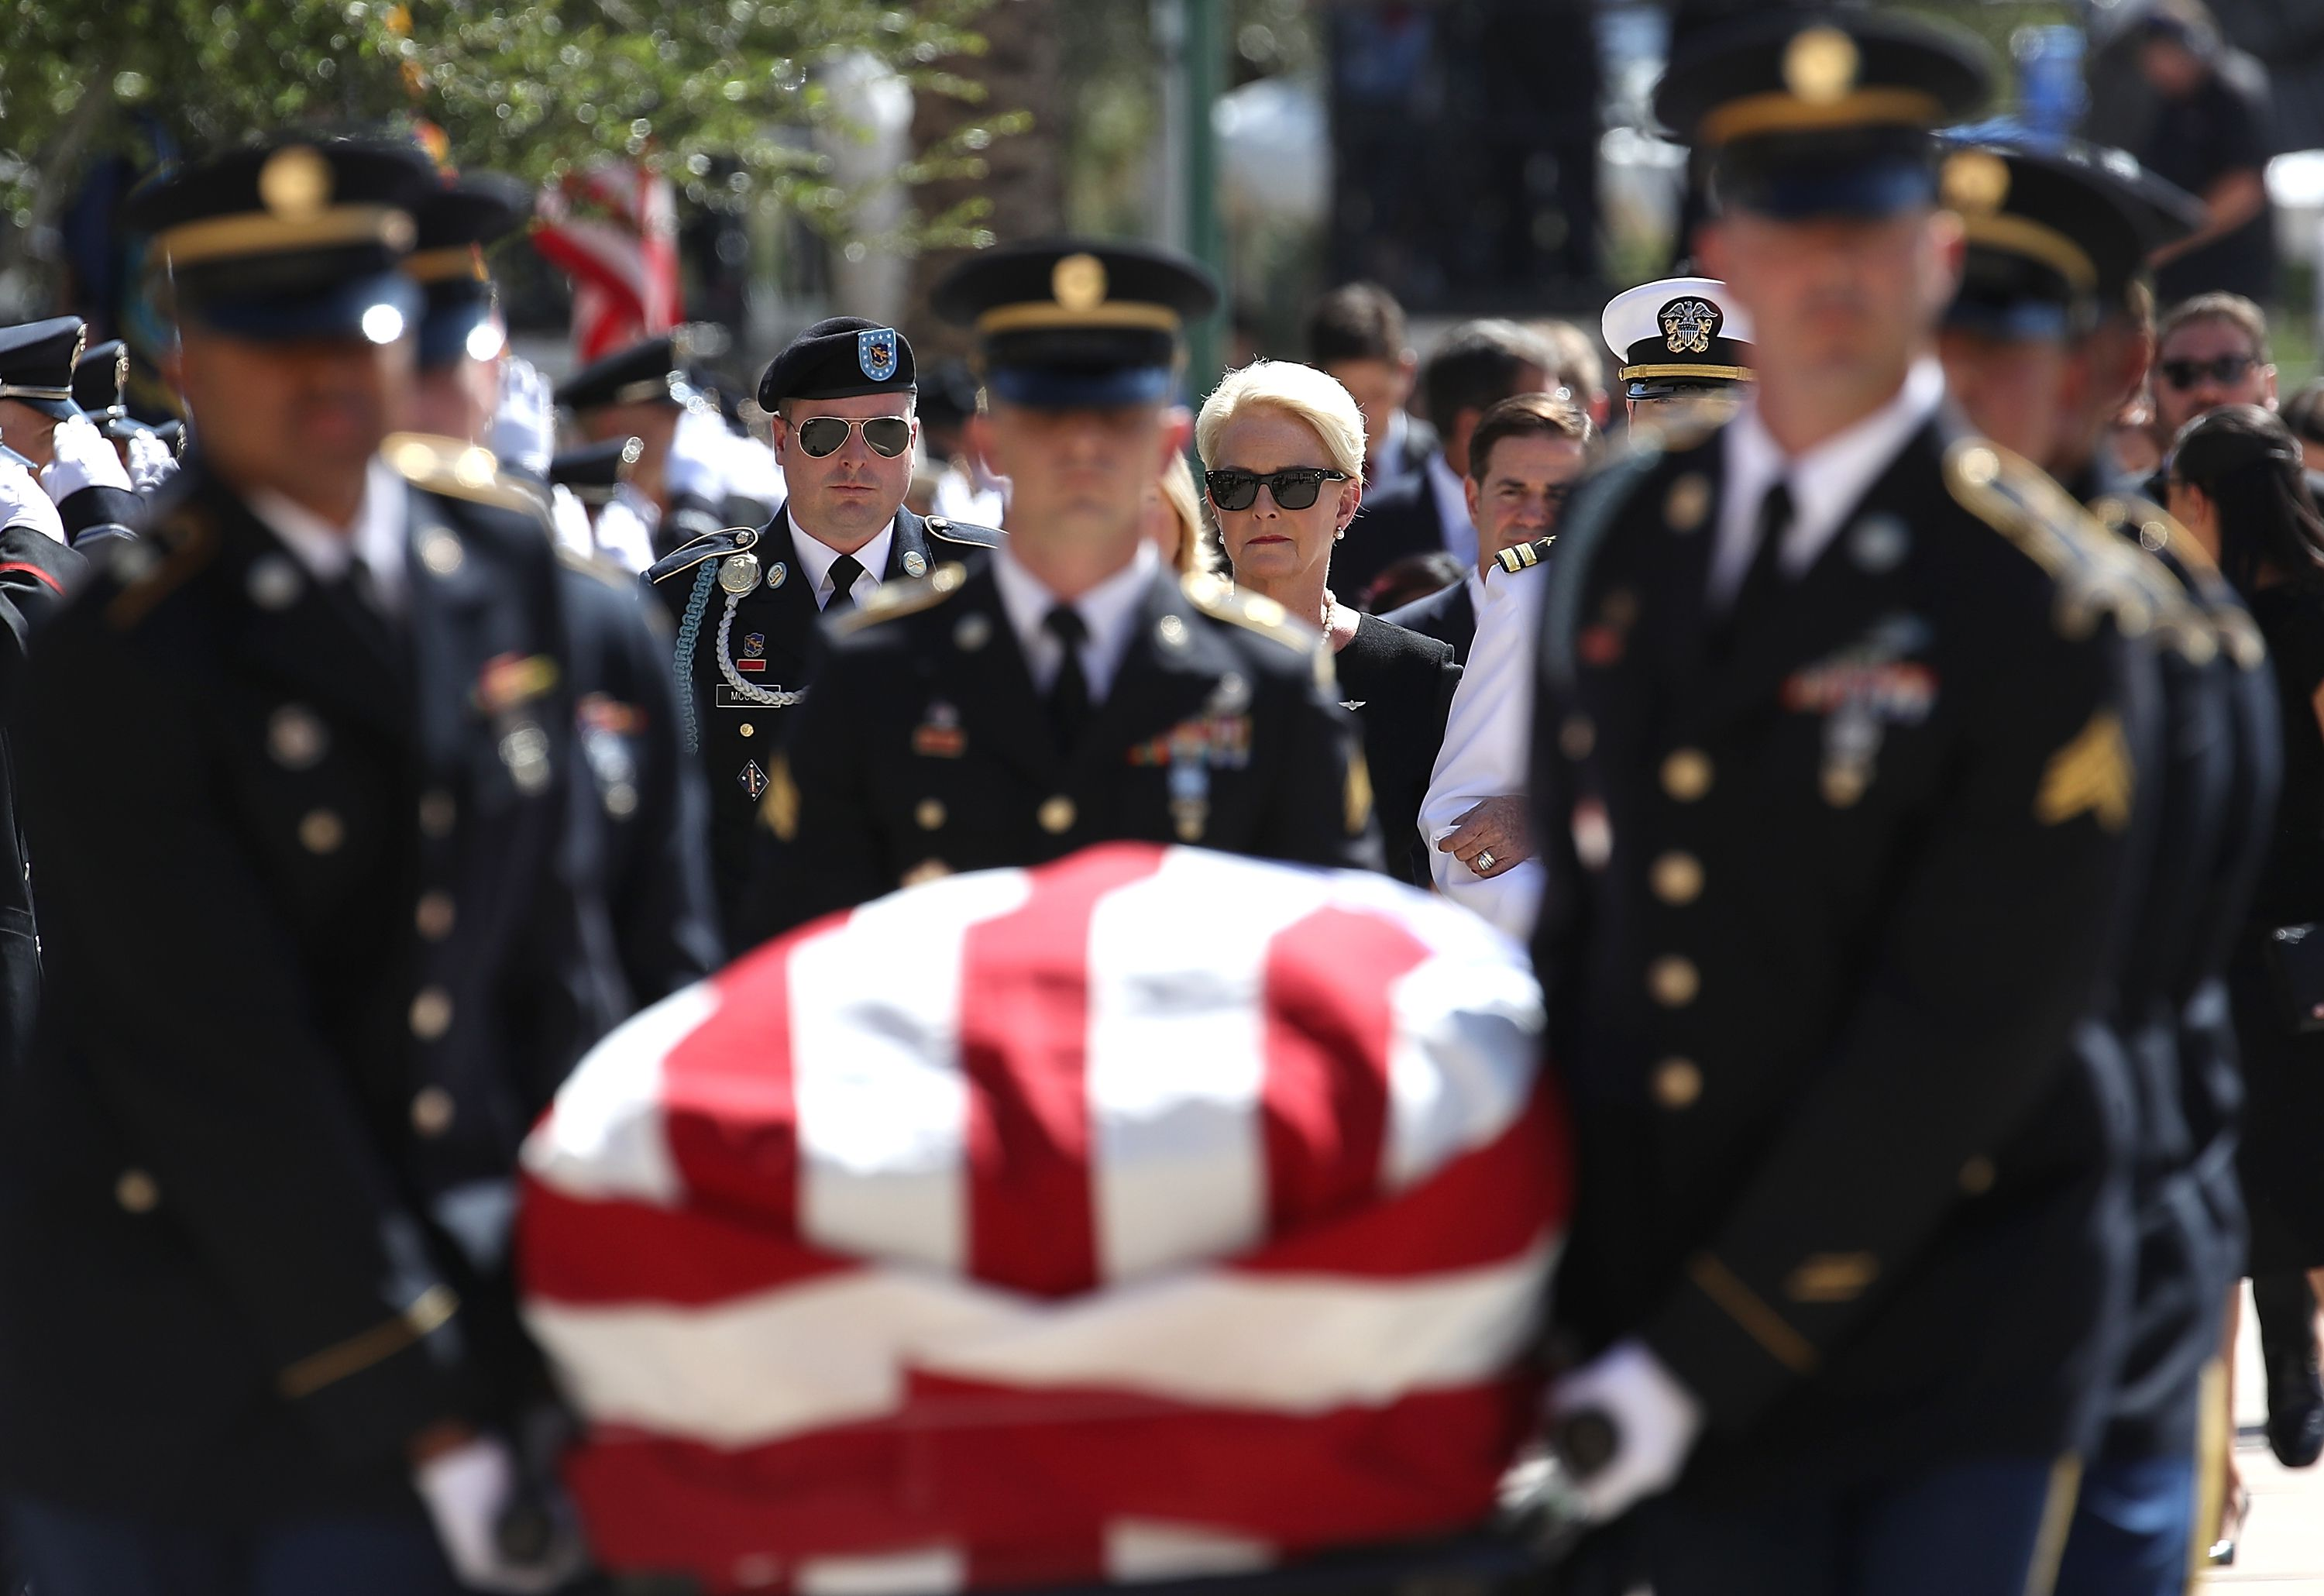 McCain's casket carried in, Cindy McCain in focus behind.